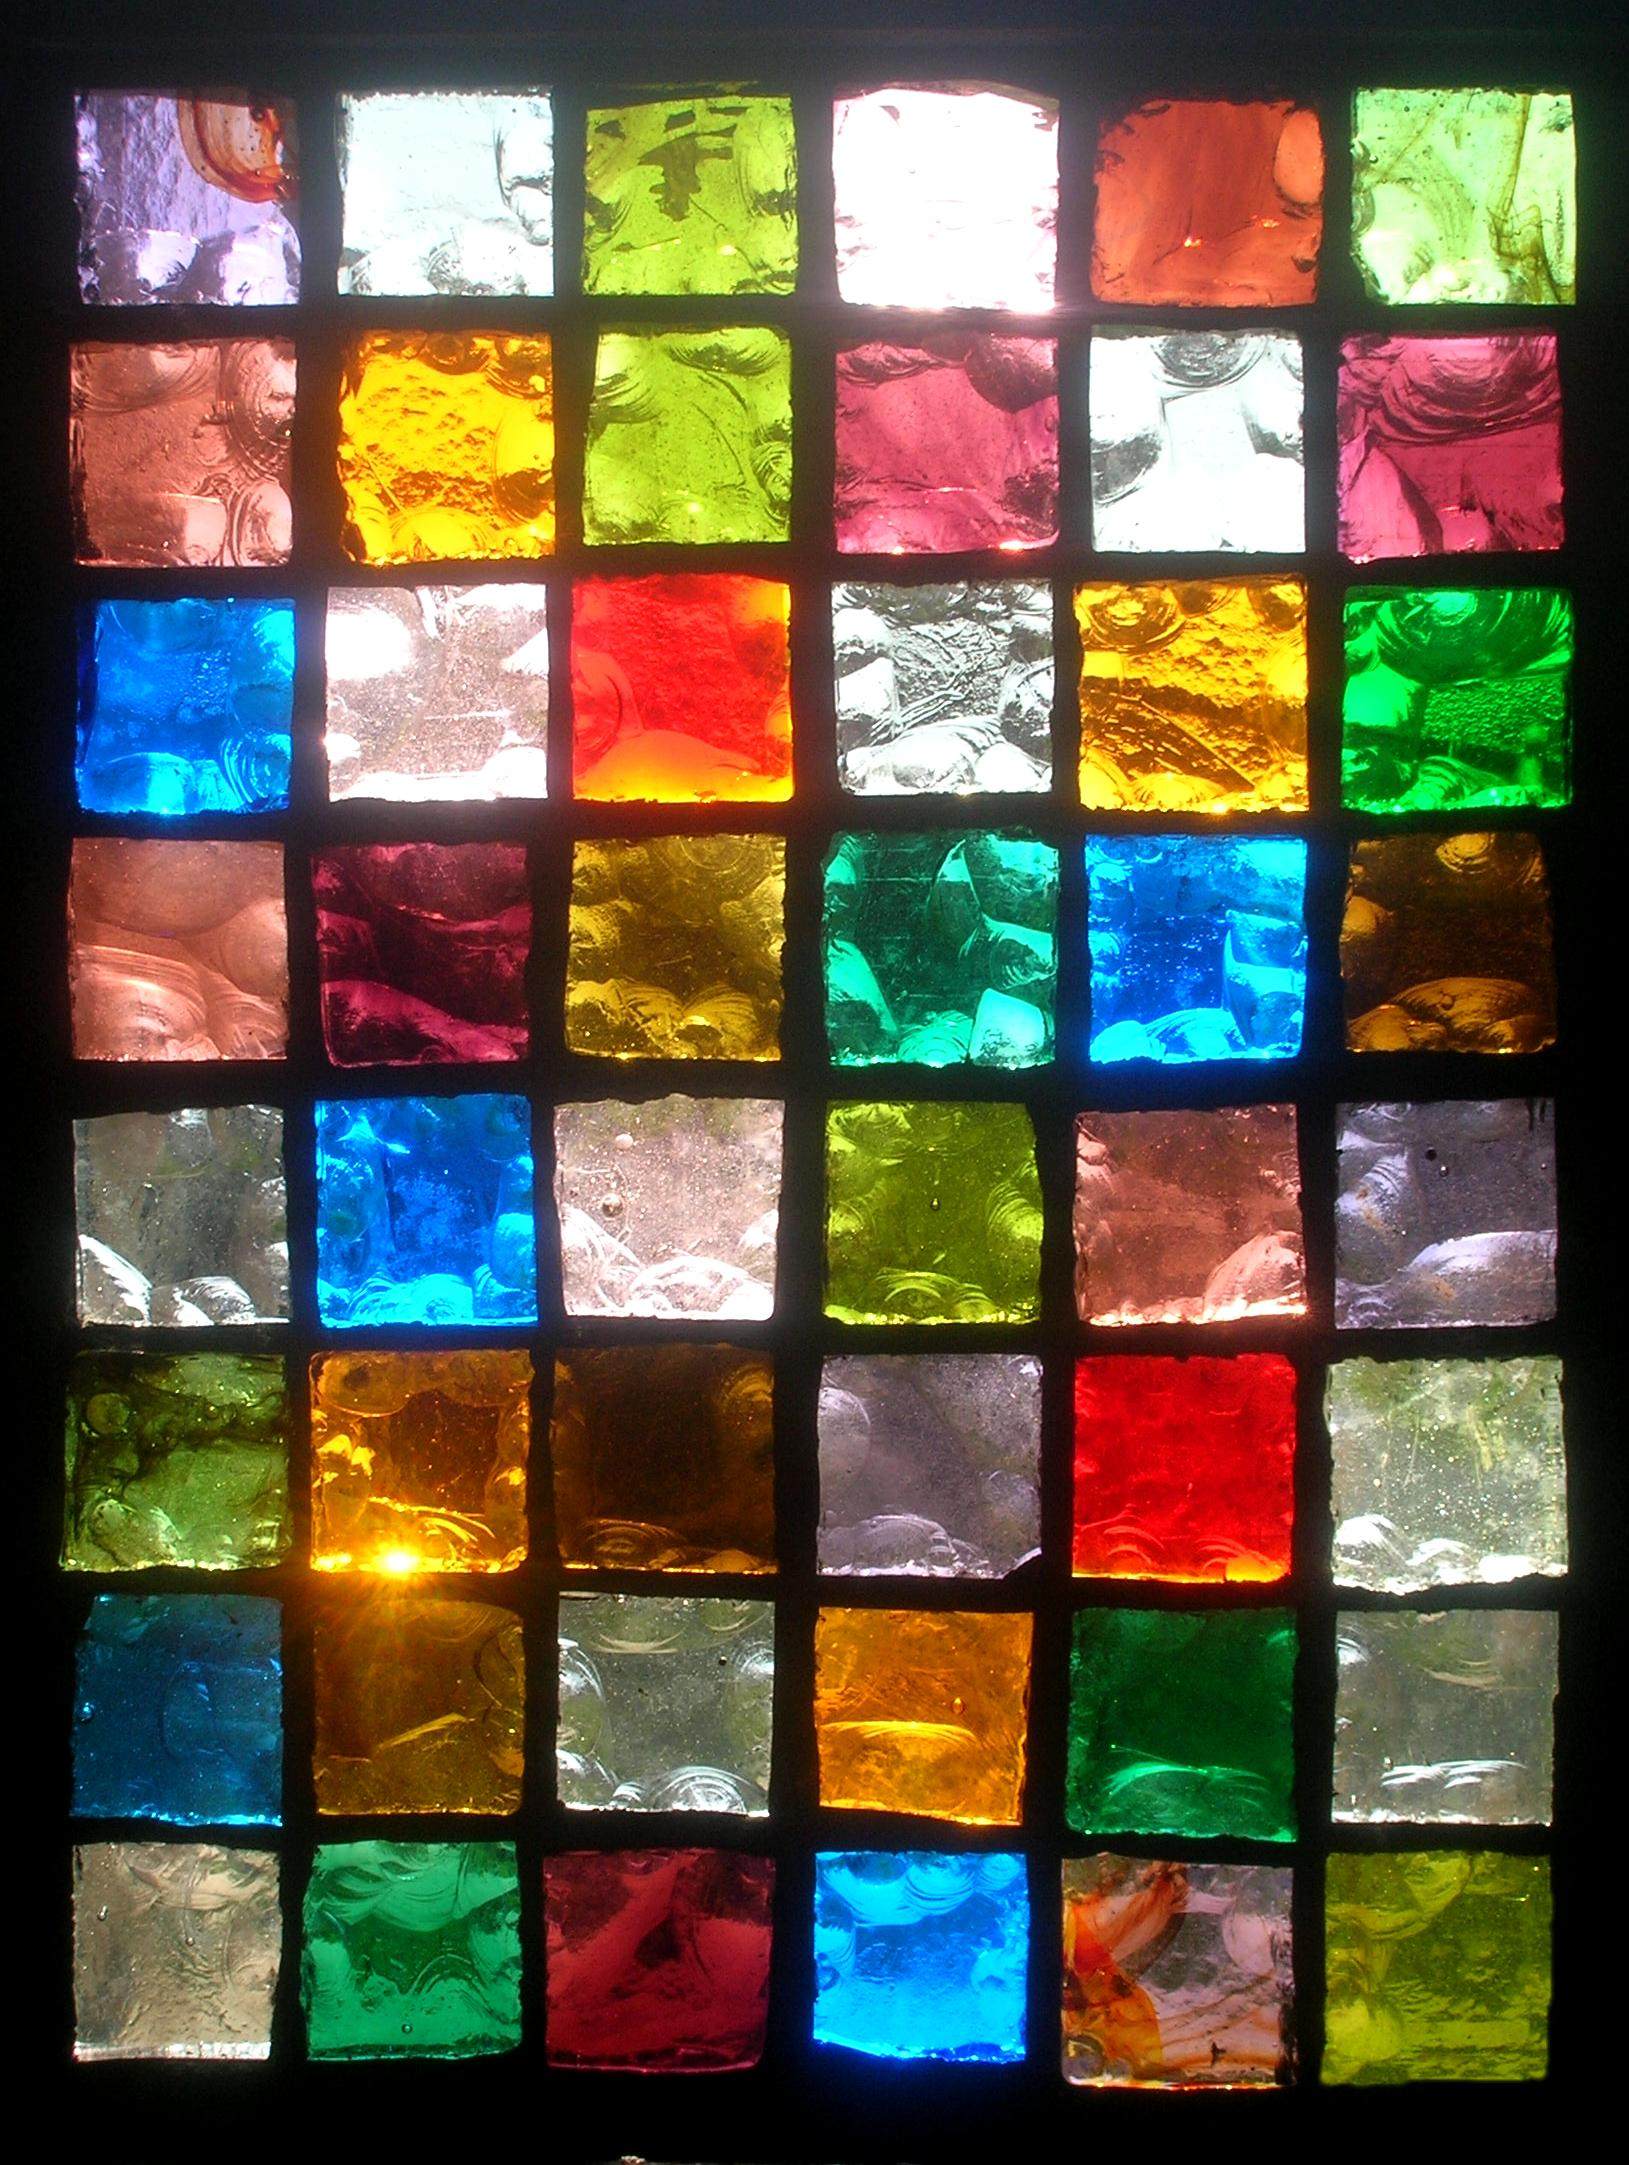 Incroyable File:Dalle De Verre Couleurs.JPG Galerie De Photos